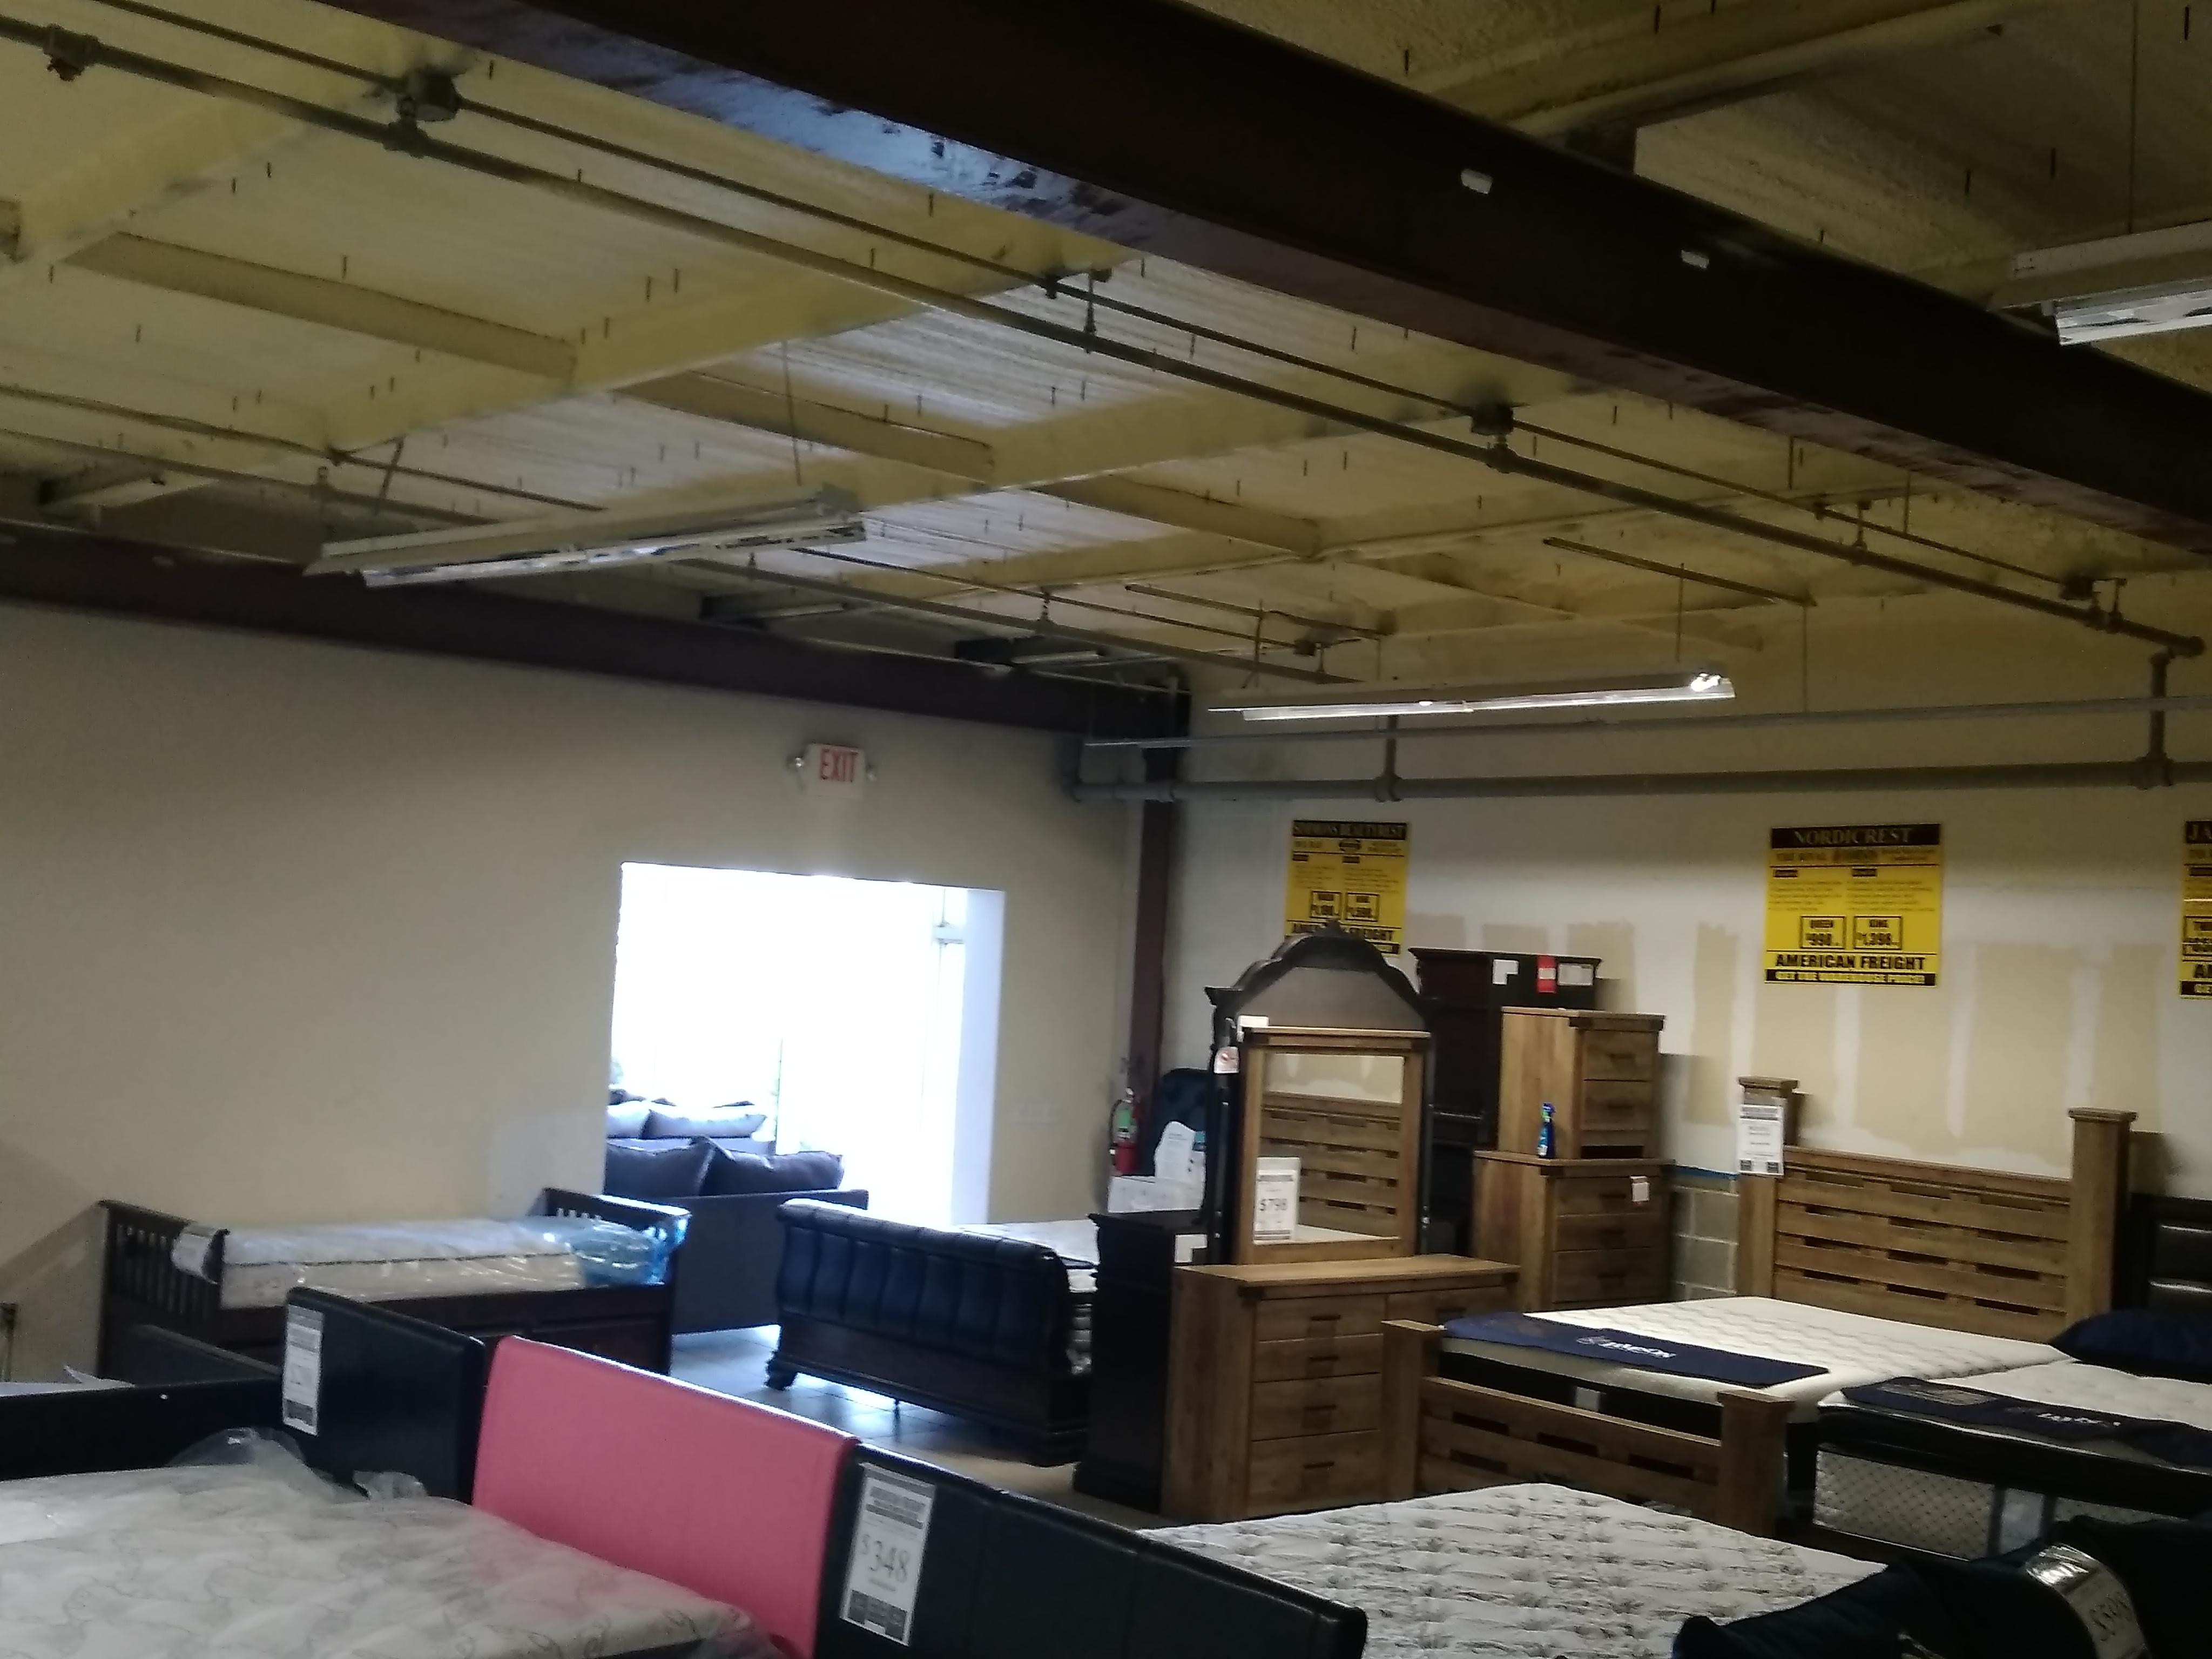 Merveilleux American Freight Furniture And Mattress 3409 N I 10 Service Rd W, Metairie,  LA 70002   YP.com